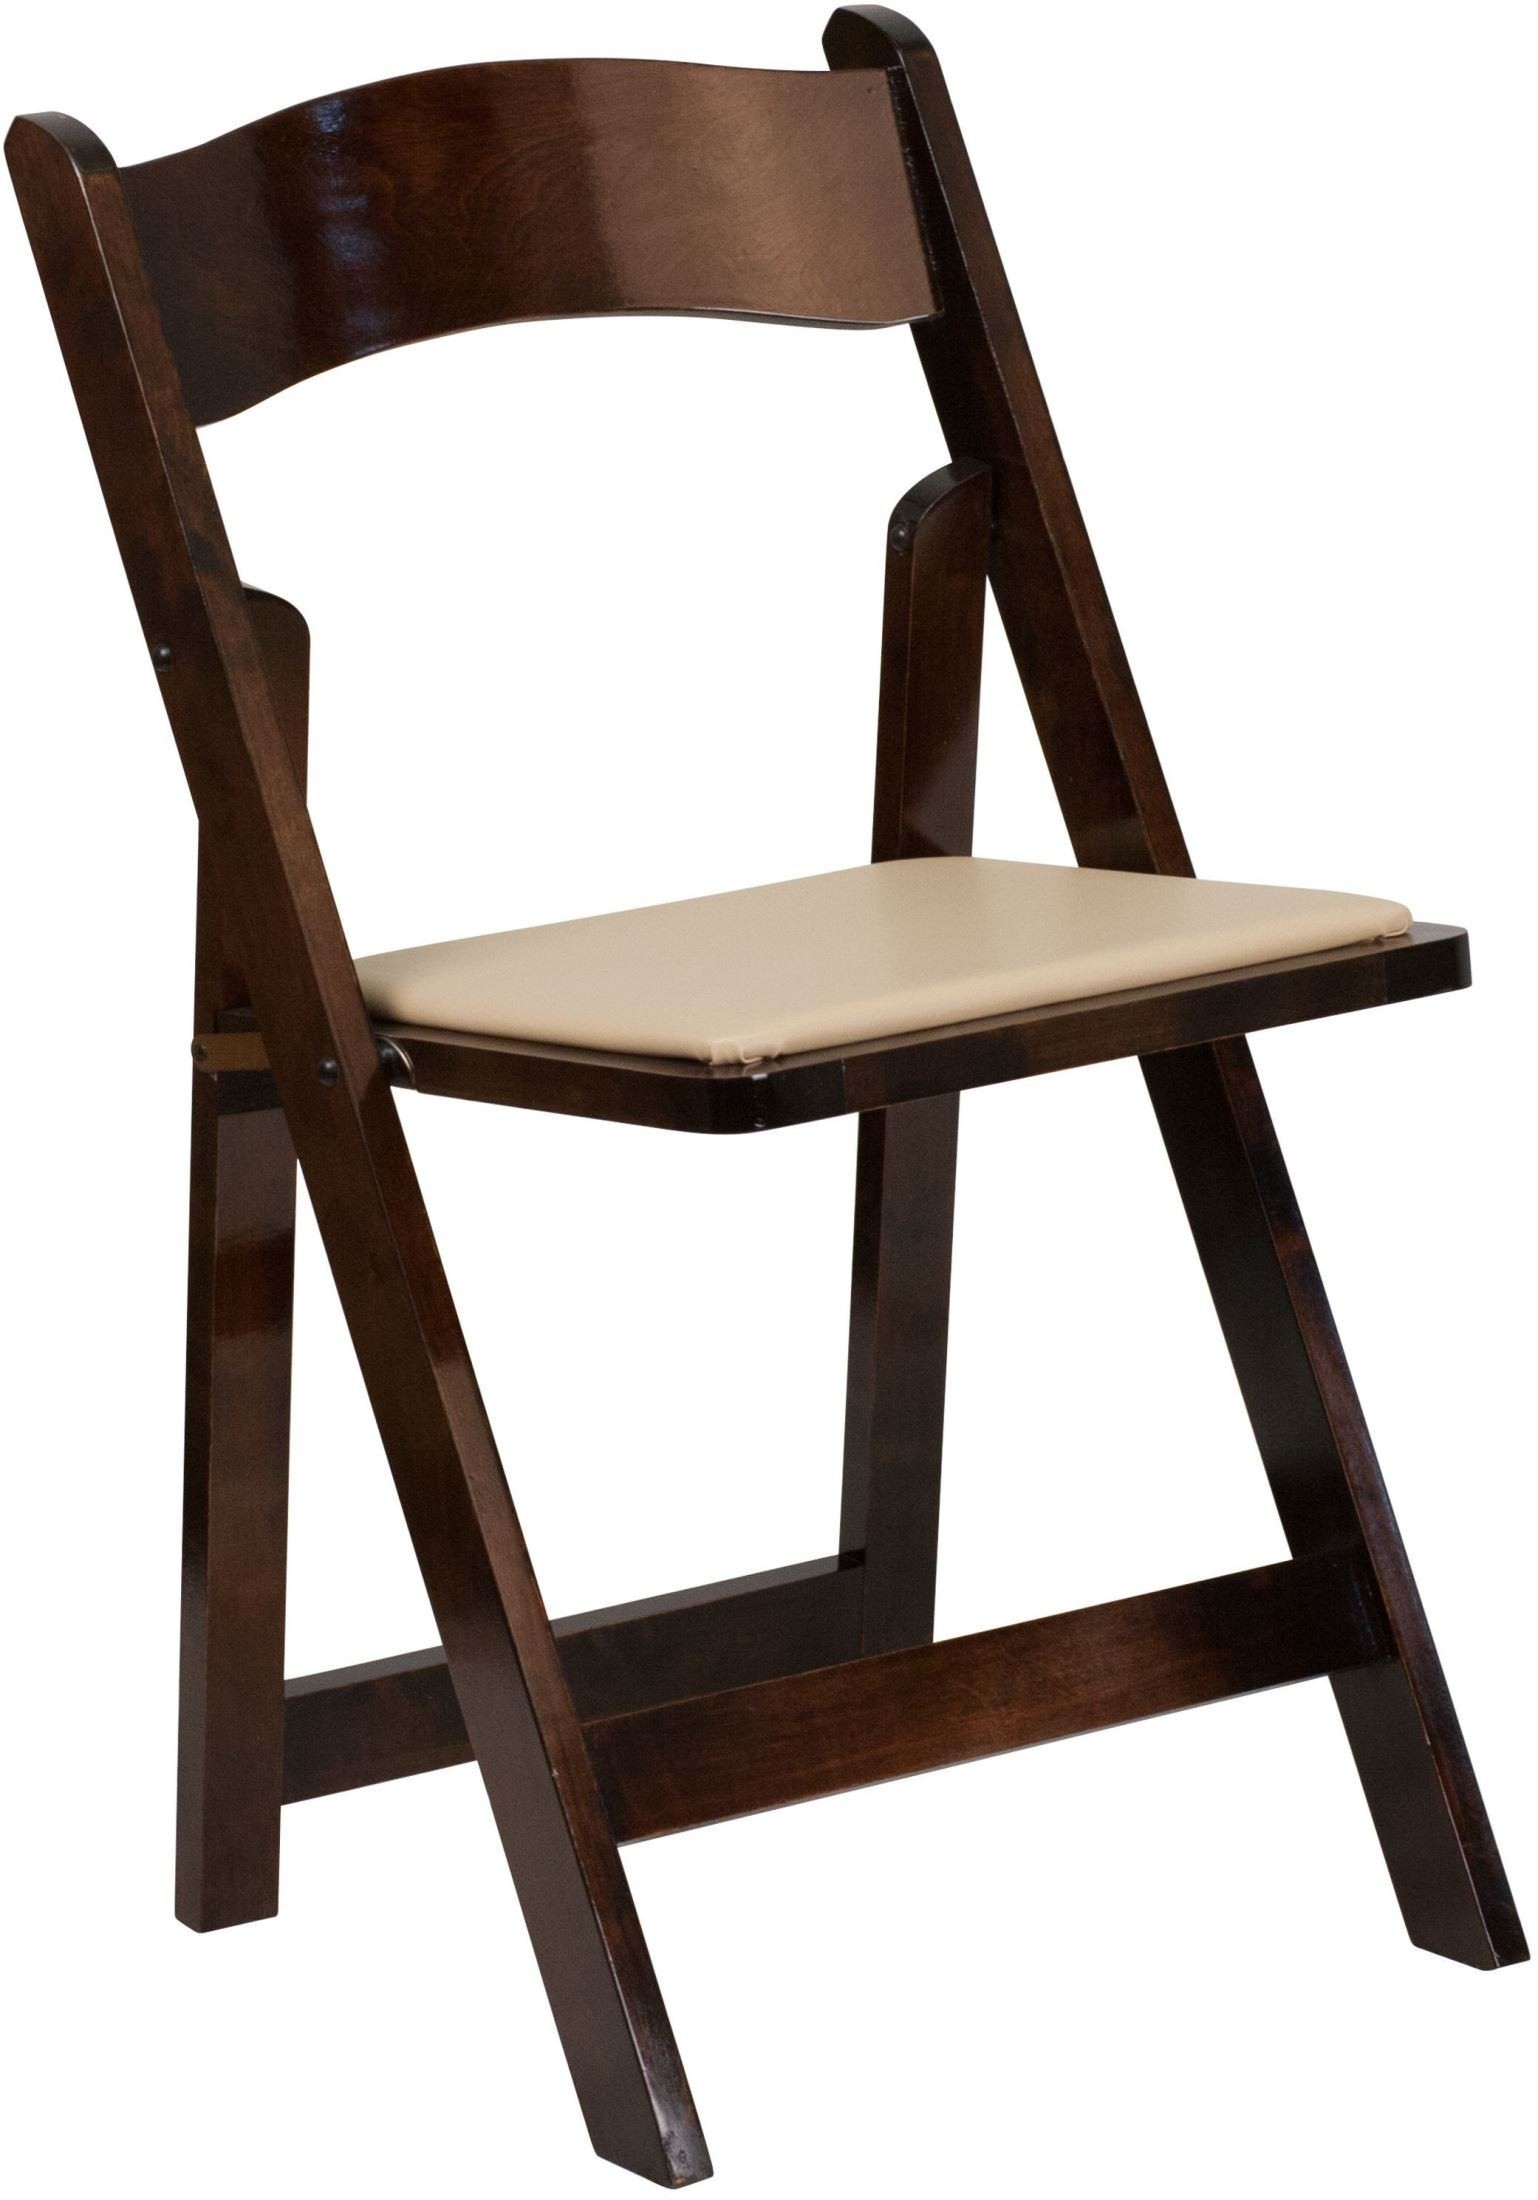 hercules folding chair 3 in one high plans series fruitwood wood and vinyl padded seat